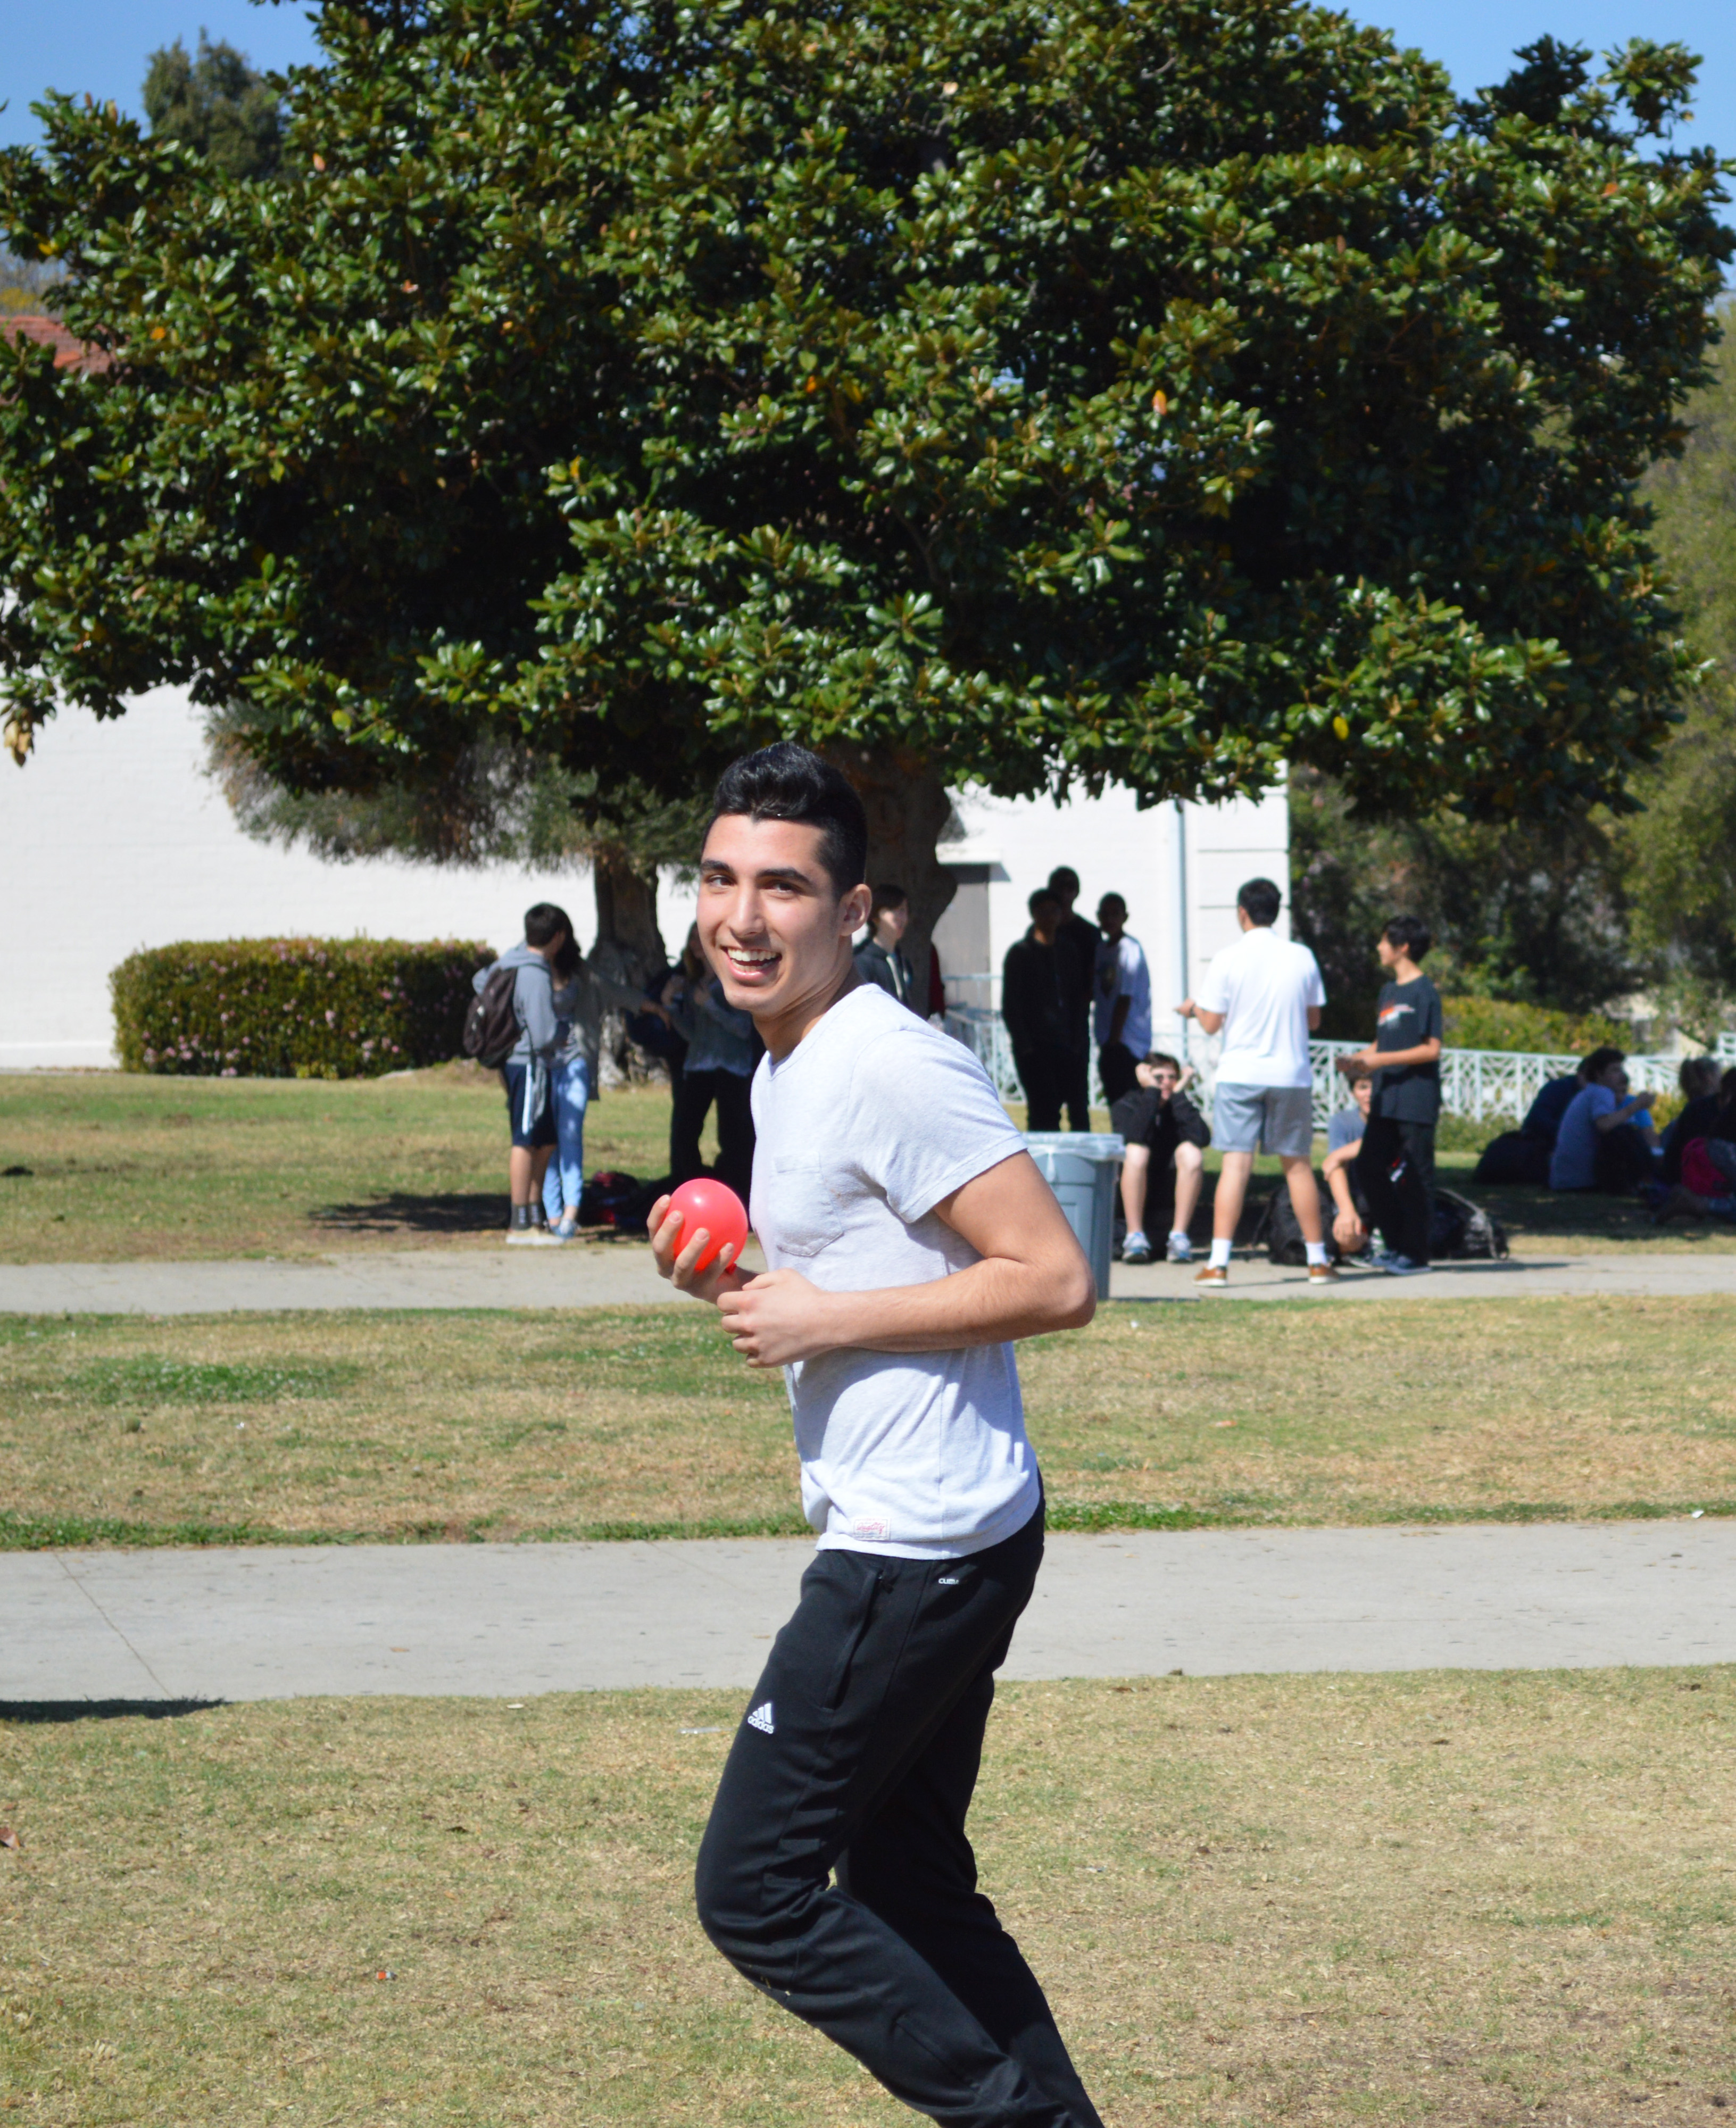 A participant of the water balloon toss prepares to throw the balloon to his partner during the final stages of the competition.